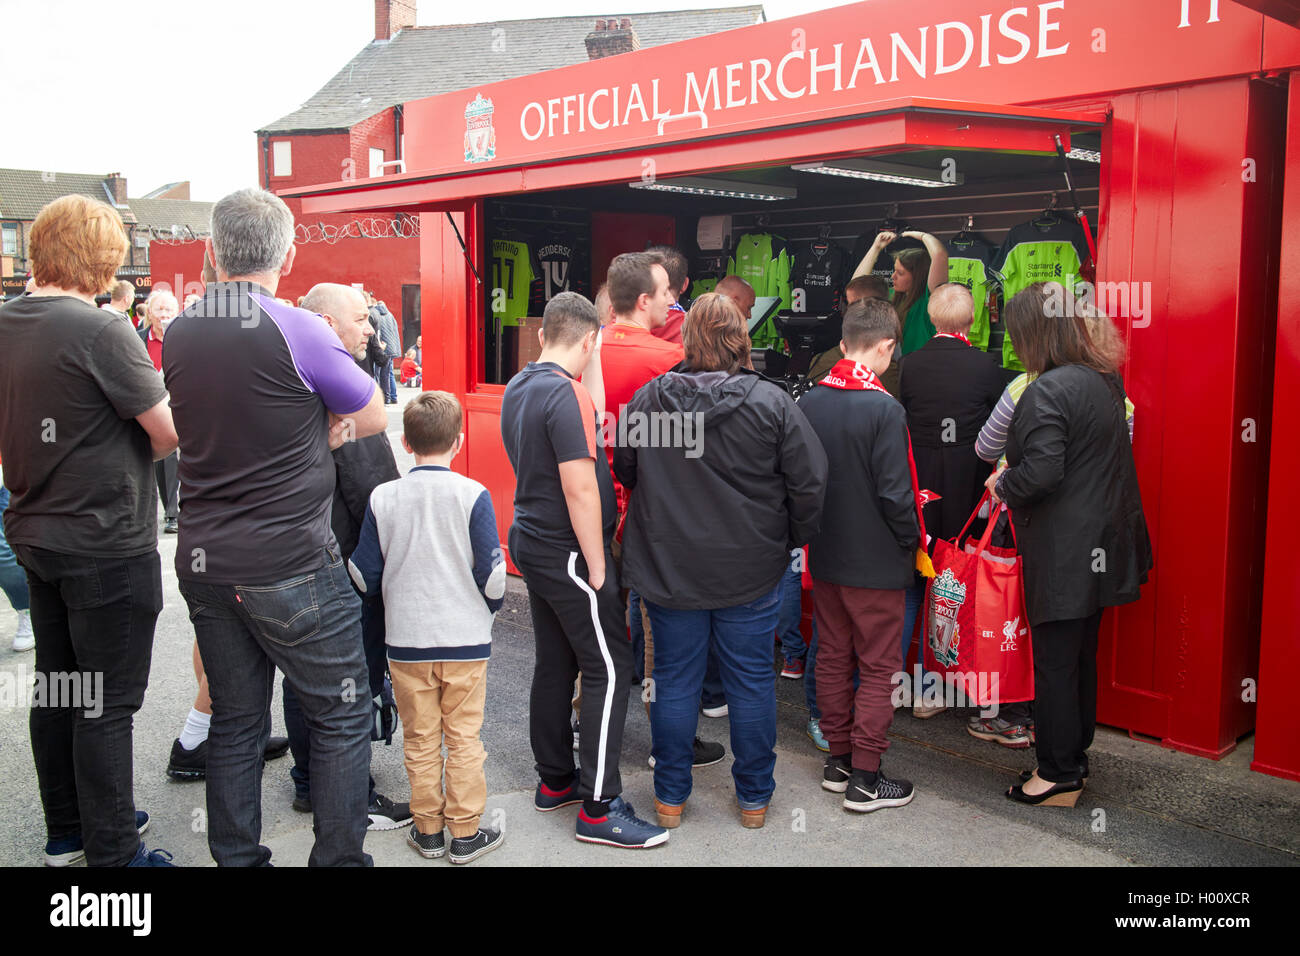 queues of fans at official merchandise stall at Liverpool FC anfield stadium Liverpool Merseyside UK - Stock Image